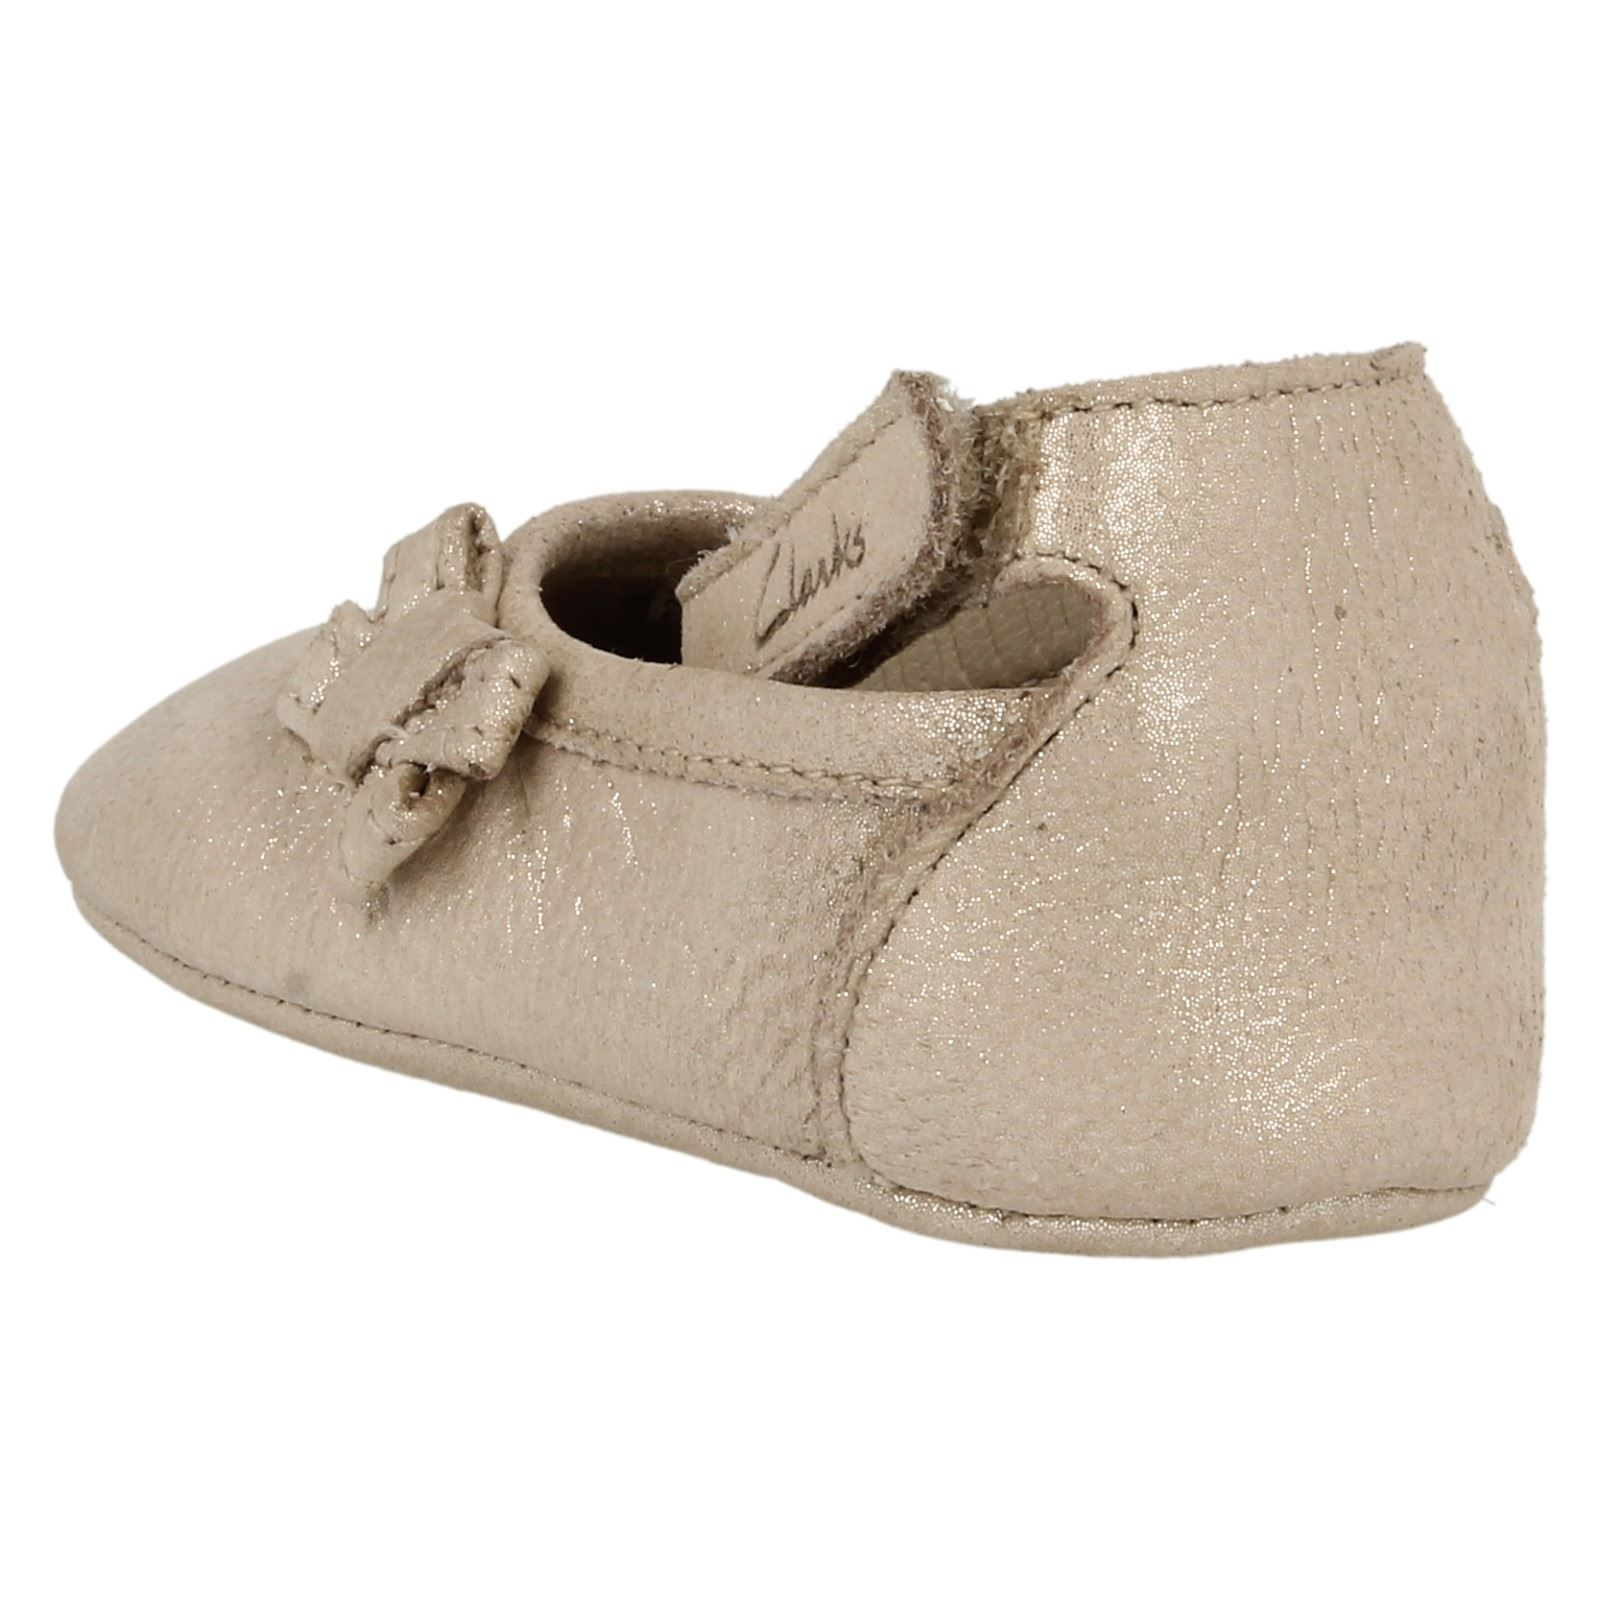 clarks baby girl pram shoes